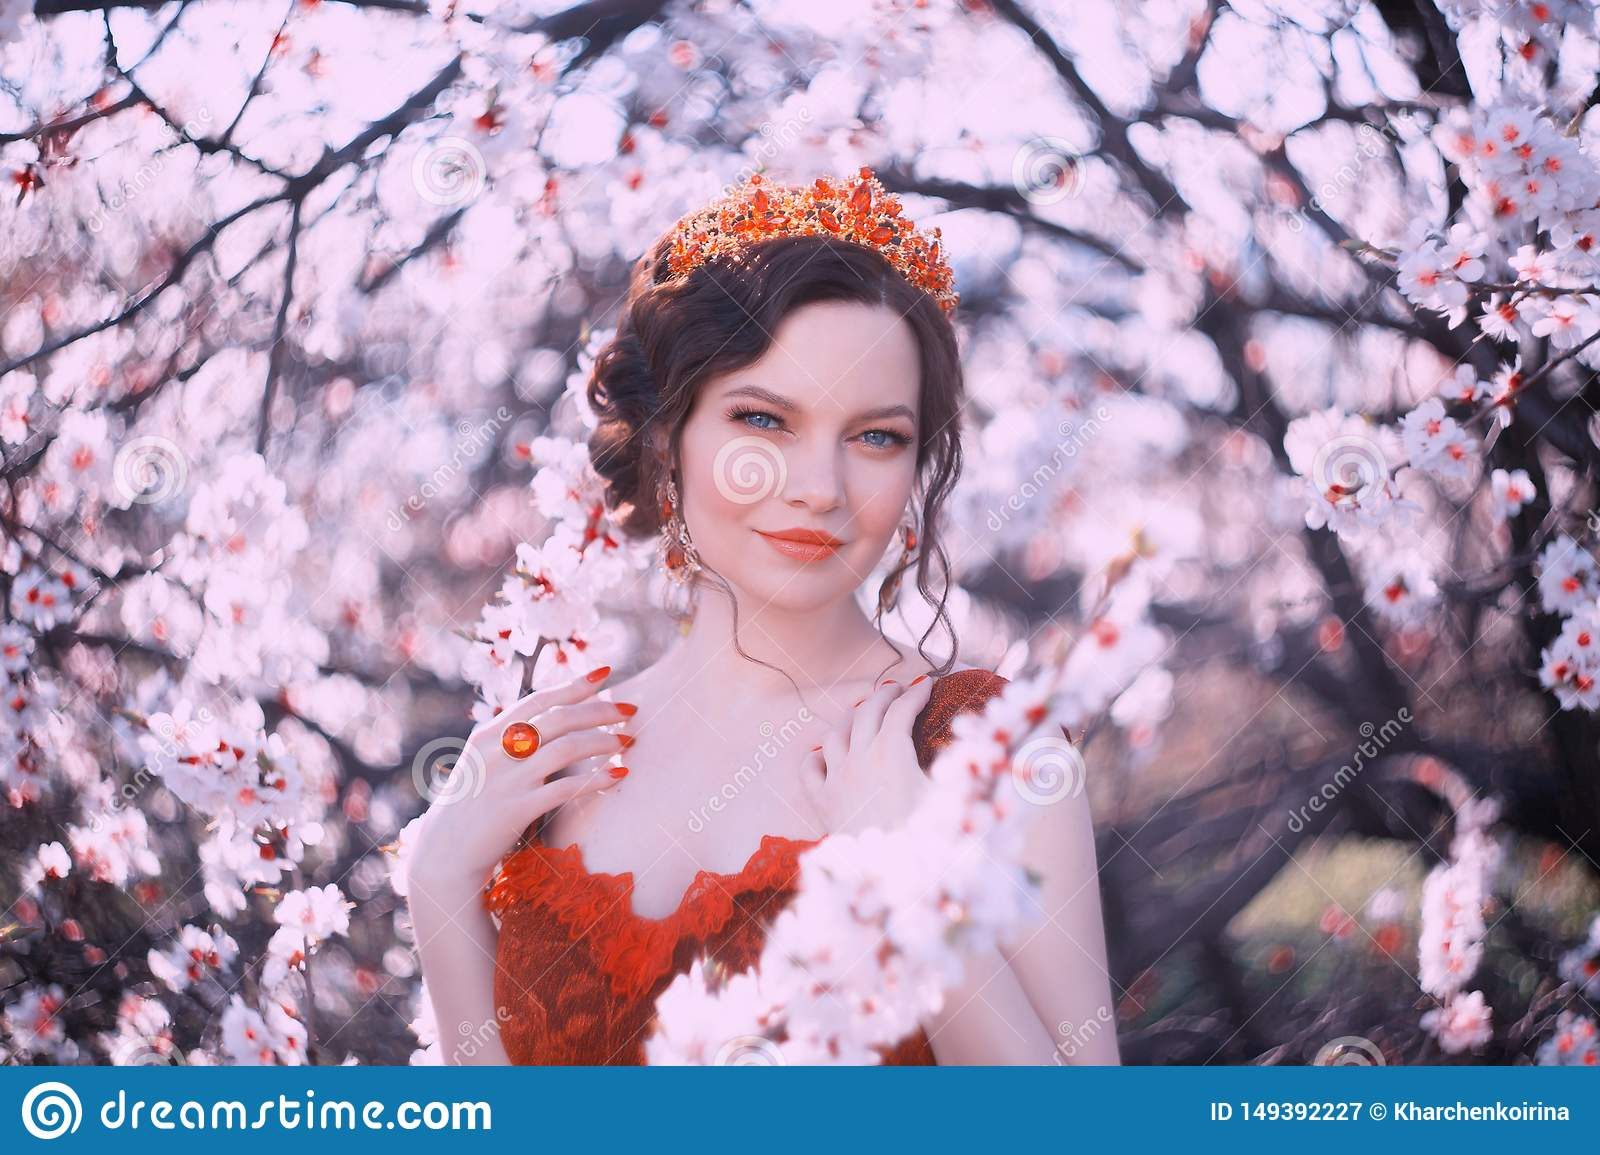 Queen of Spring walks in the blooming garden, a portrait photo of a pretty woman with dark hair and a golden crown on